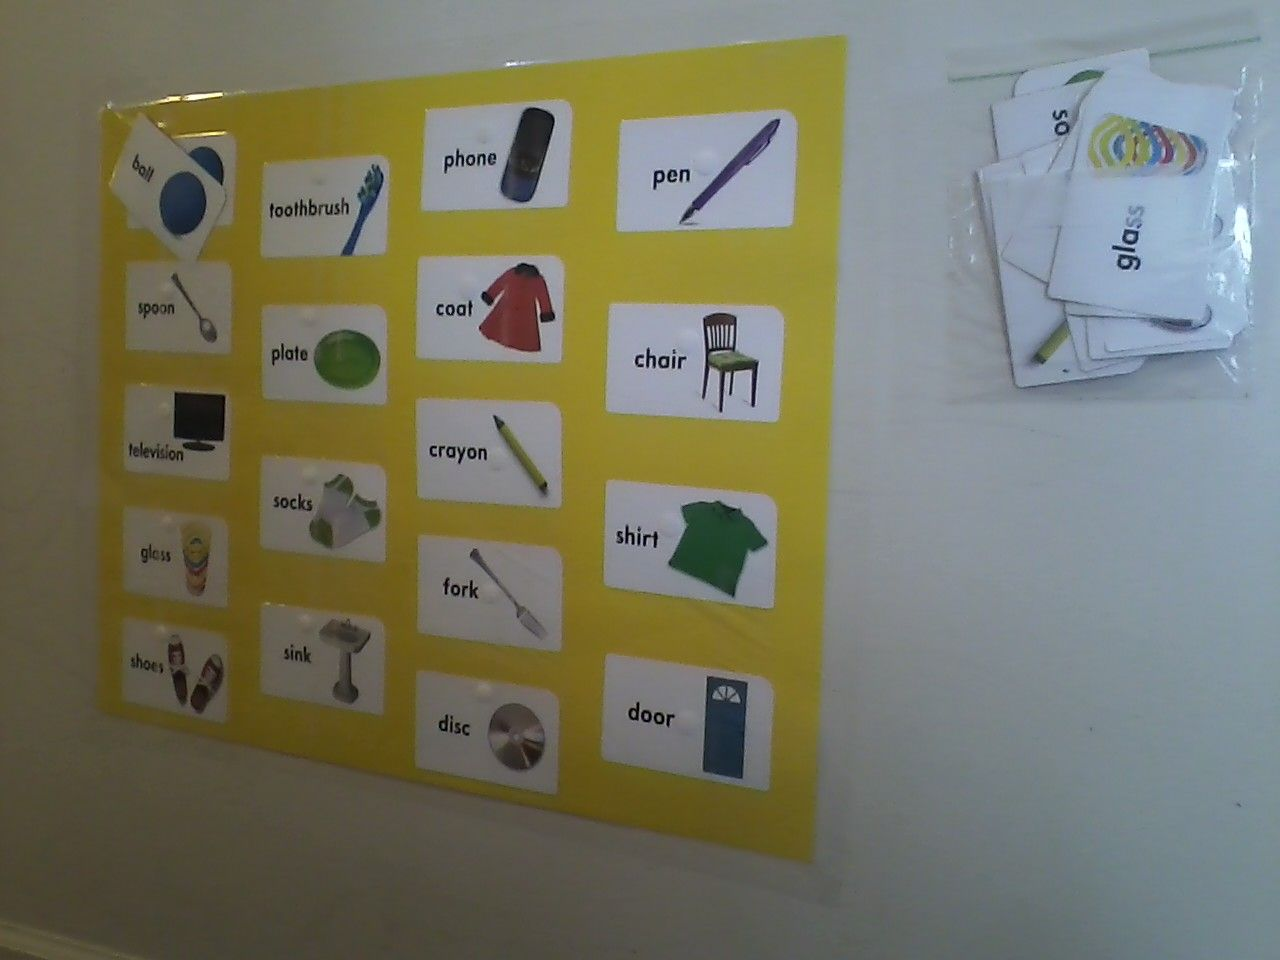 Simple Picture Word Matching Board Buy 2 Identical Flash Card Sets Poster Board Velcro Dots Adhere One Set To Pos Matching Cards Card Set Velcro Dots